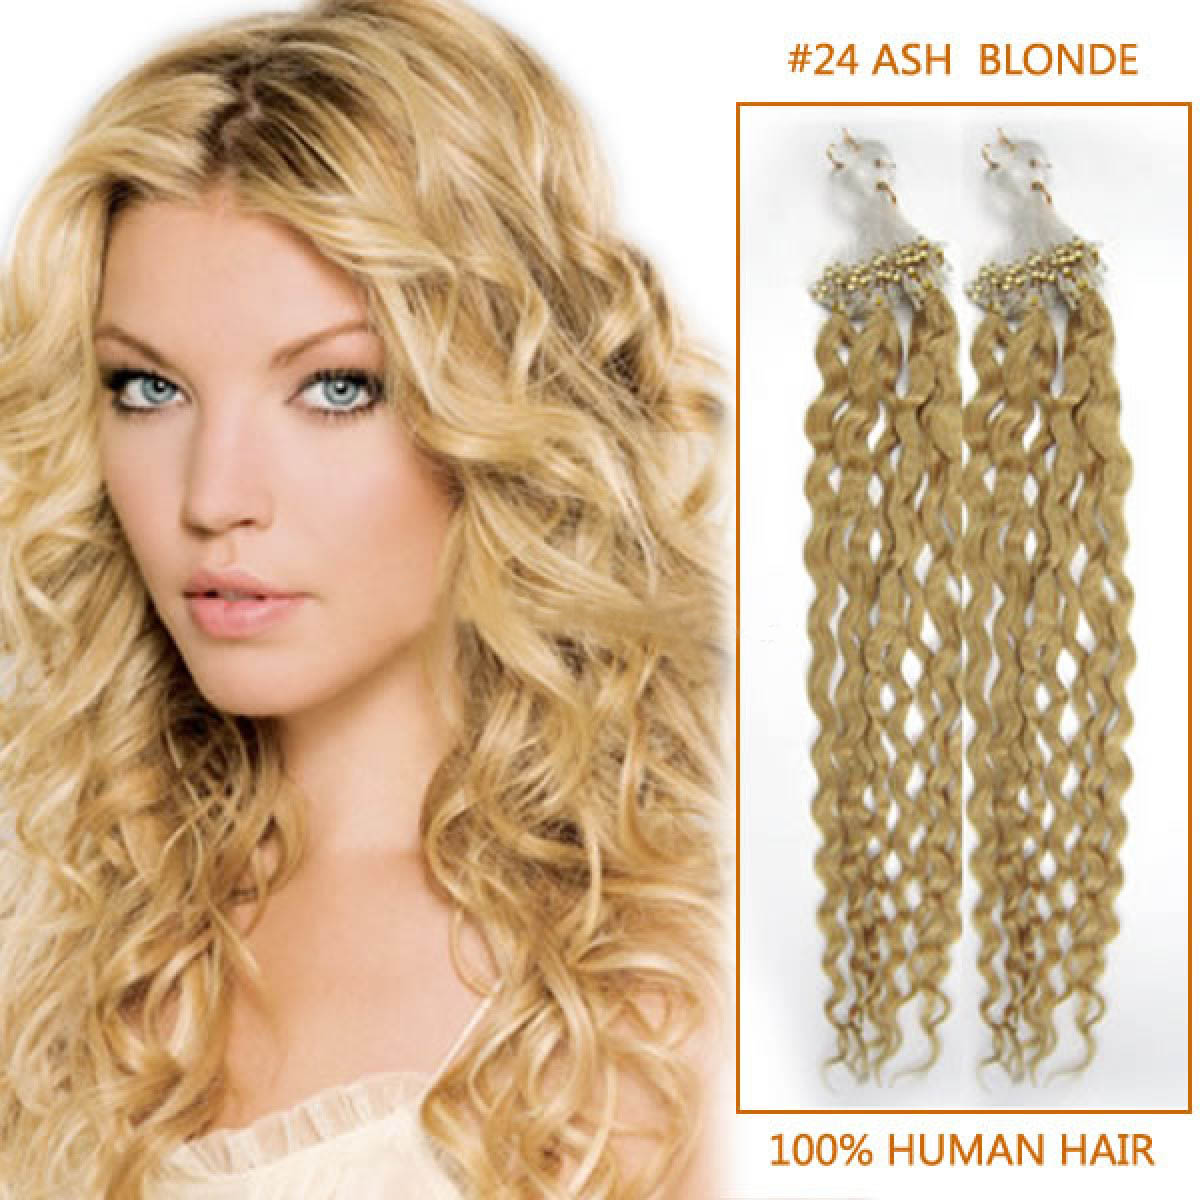 Inch lustrous 24 ash blonde curly micro loop hair extensions 100 24 inch lustrous 24 ash blonde curly micro loop hair extensions 100 strands pmusecretfo Image collections